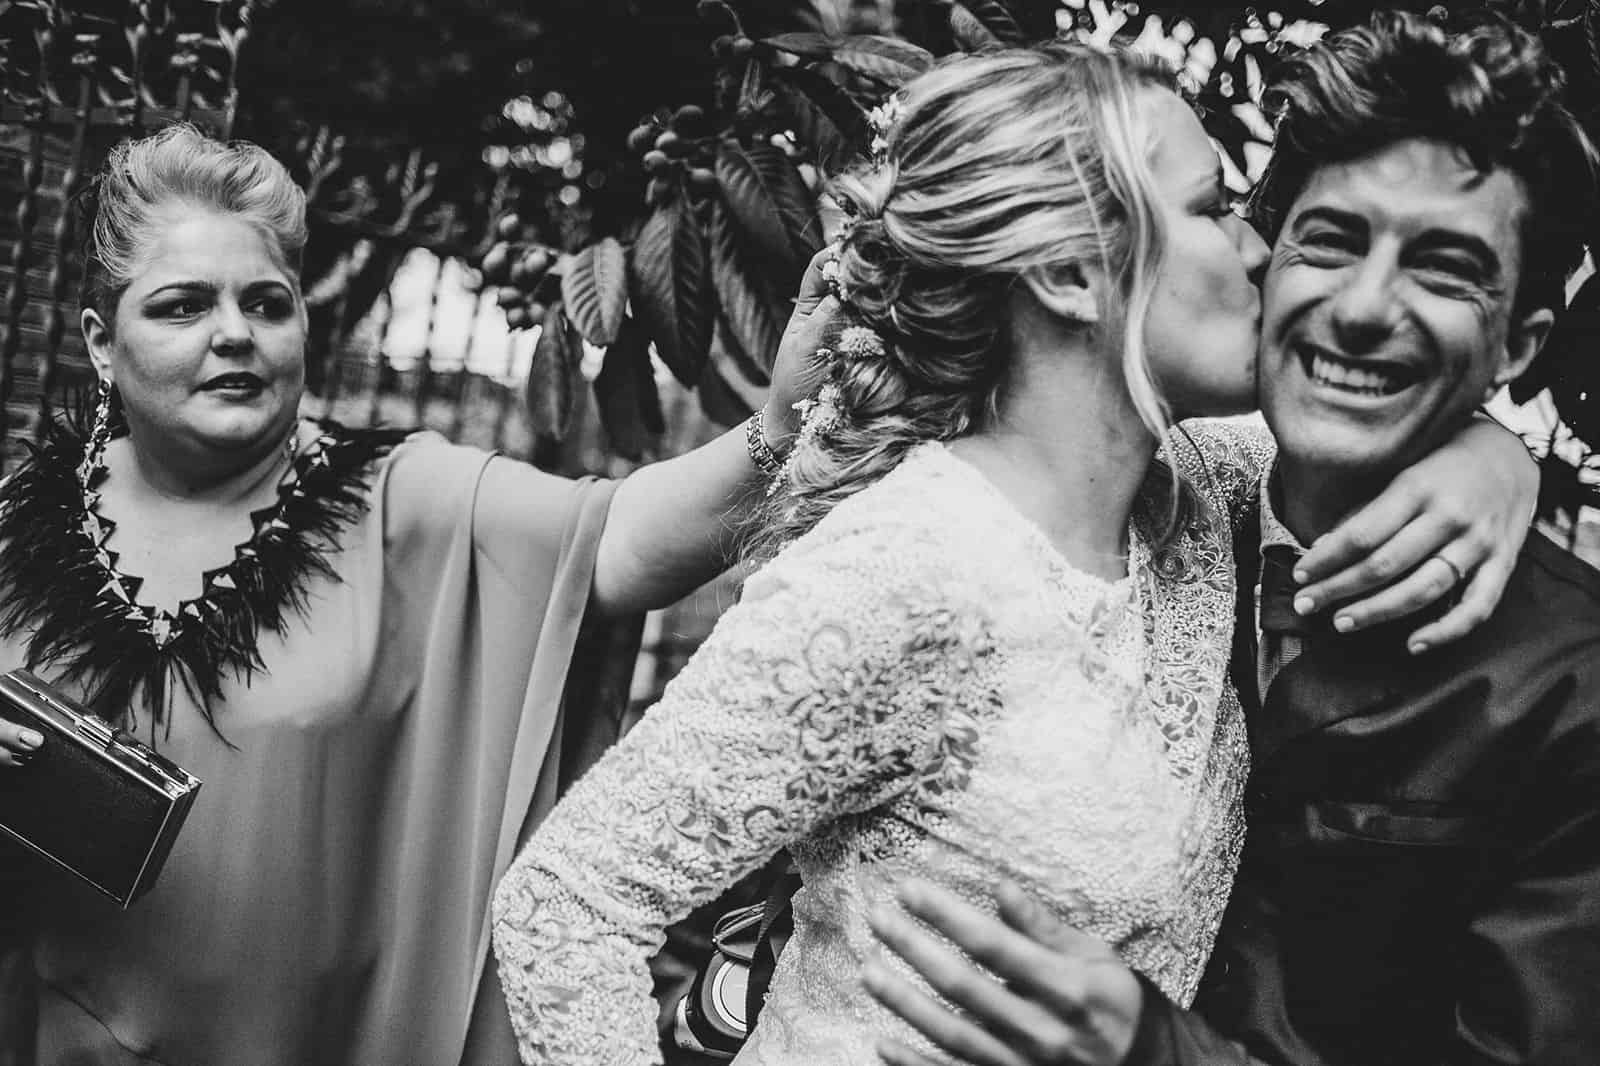 bride kiss a friend while a woman laughs